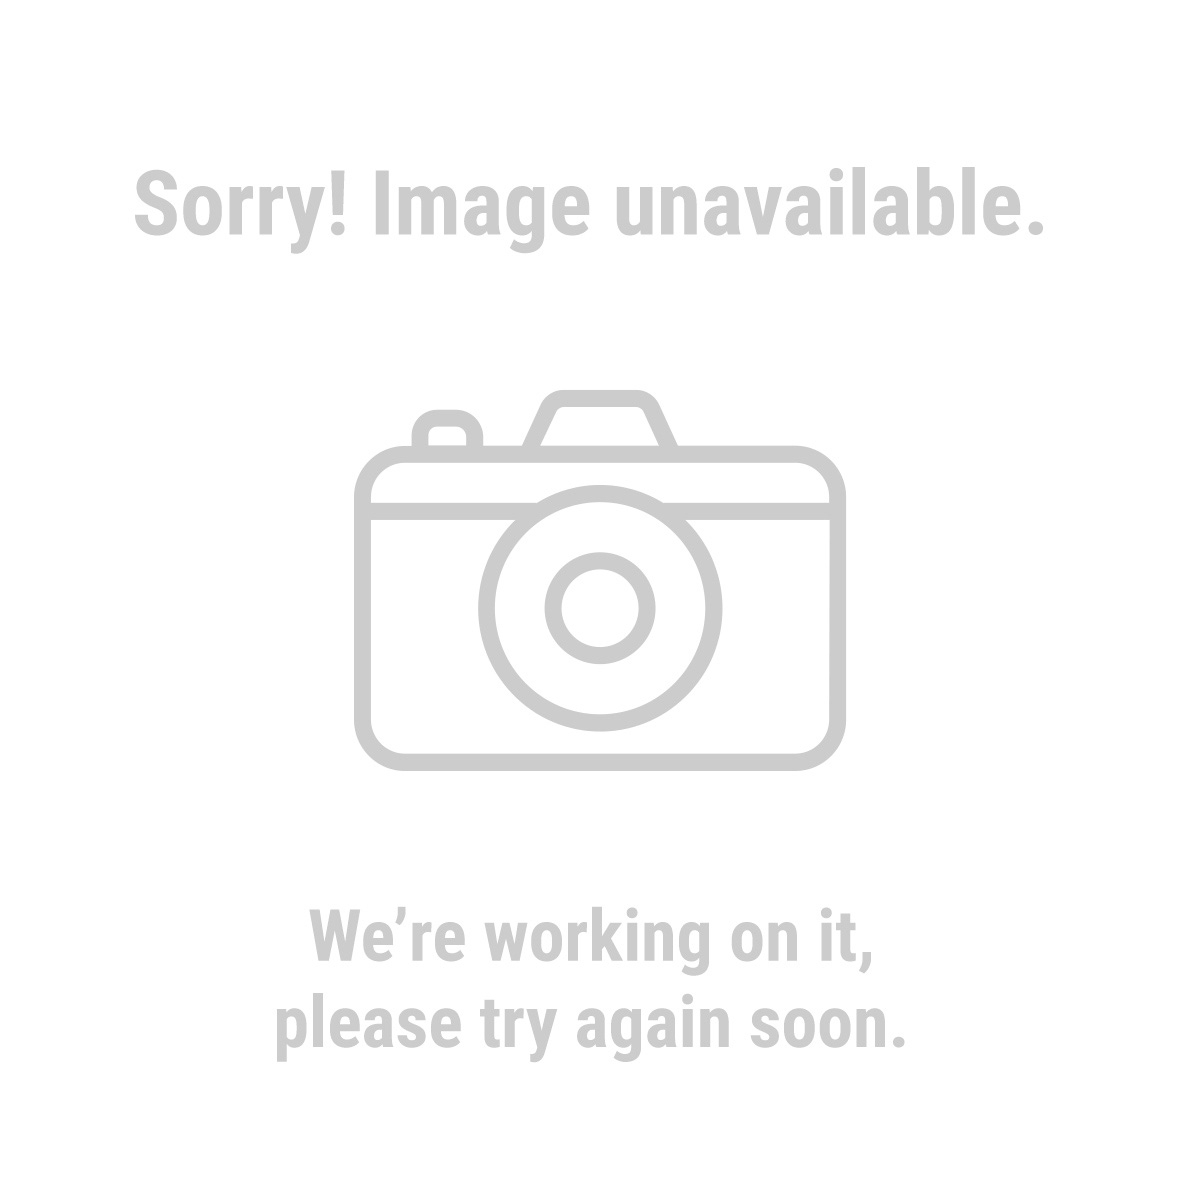 Storehouse 67532 240 Piece Nut and Bolt Assortment